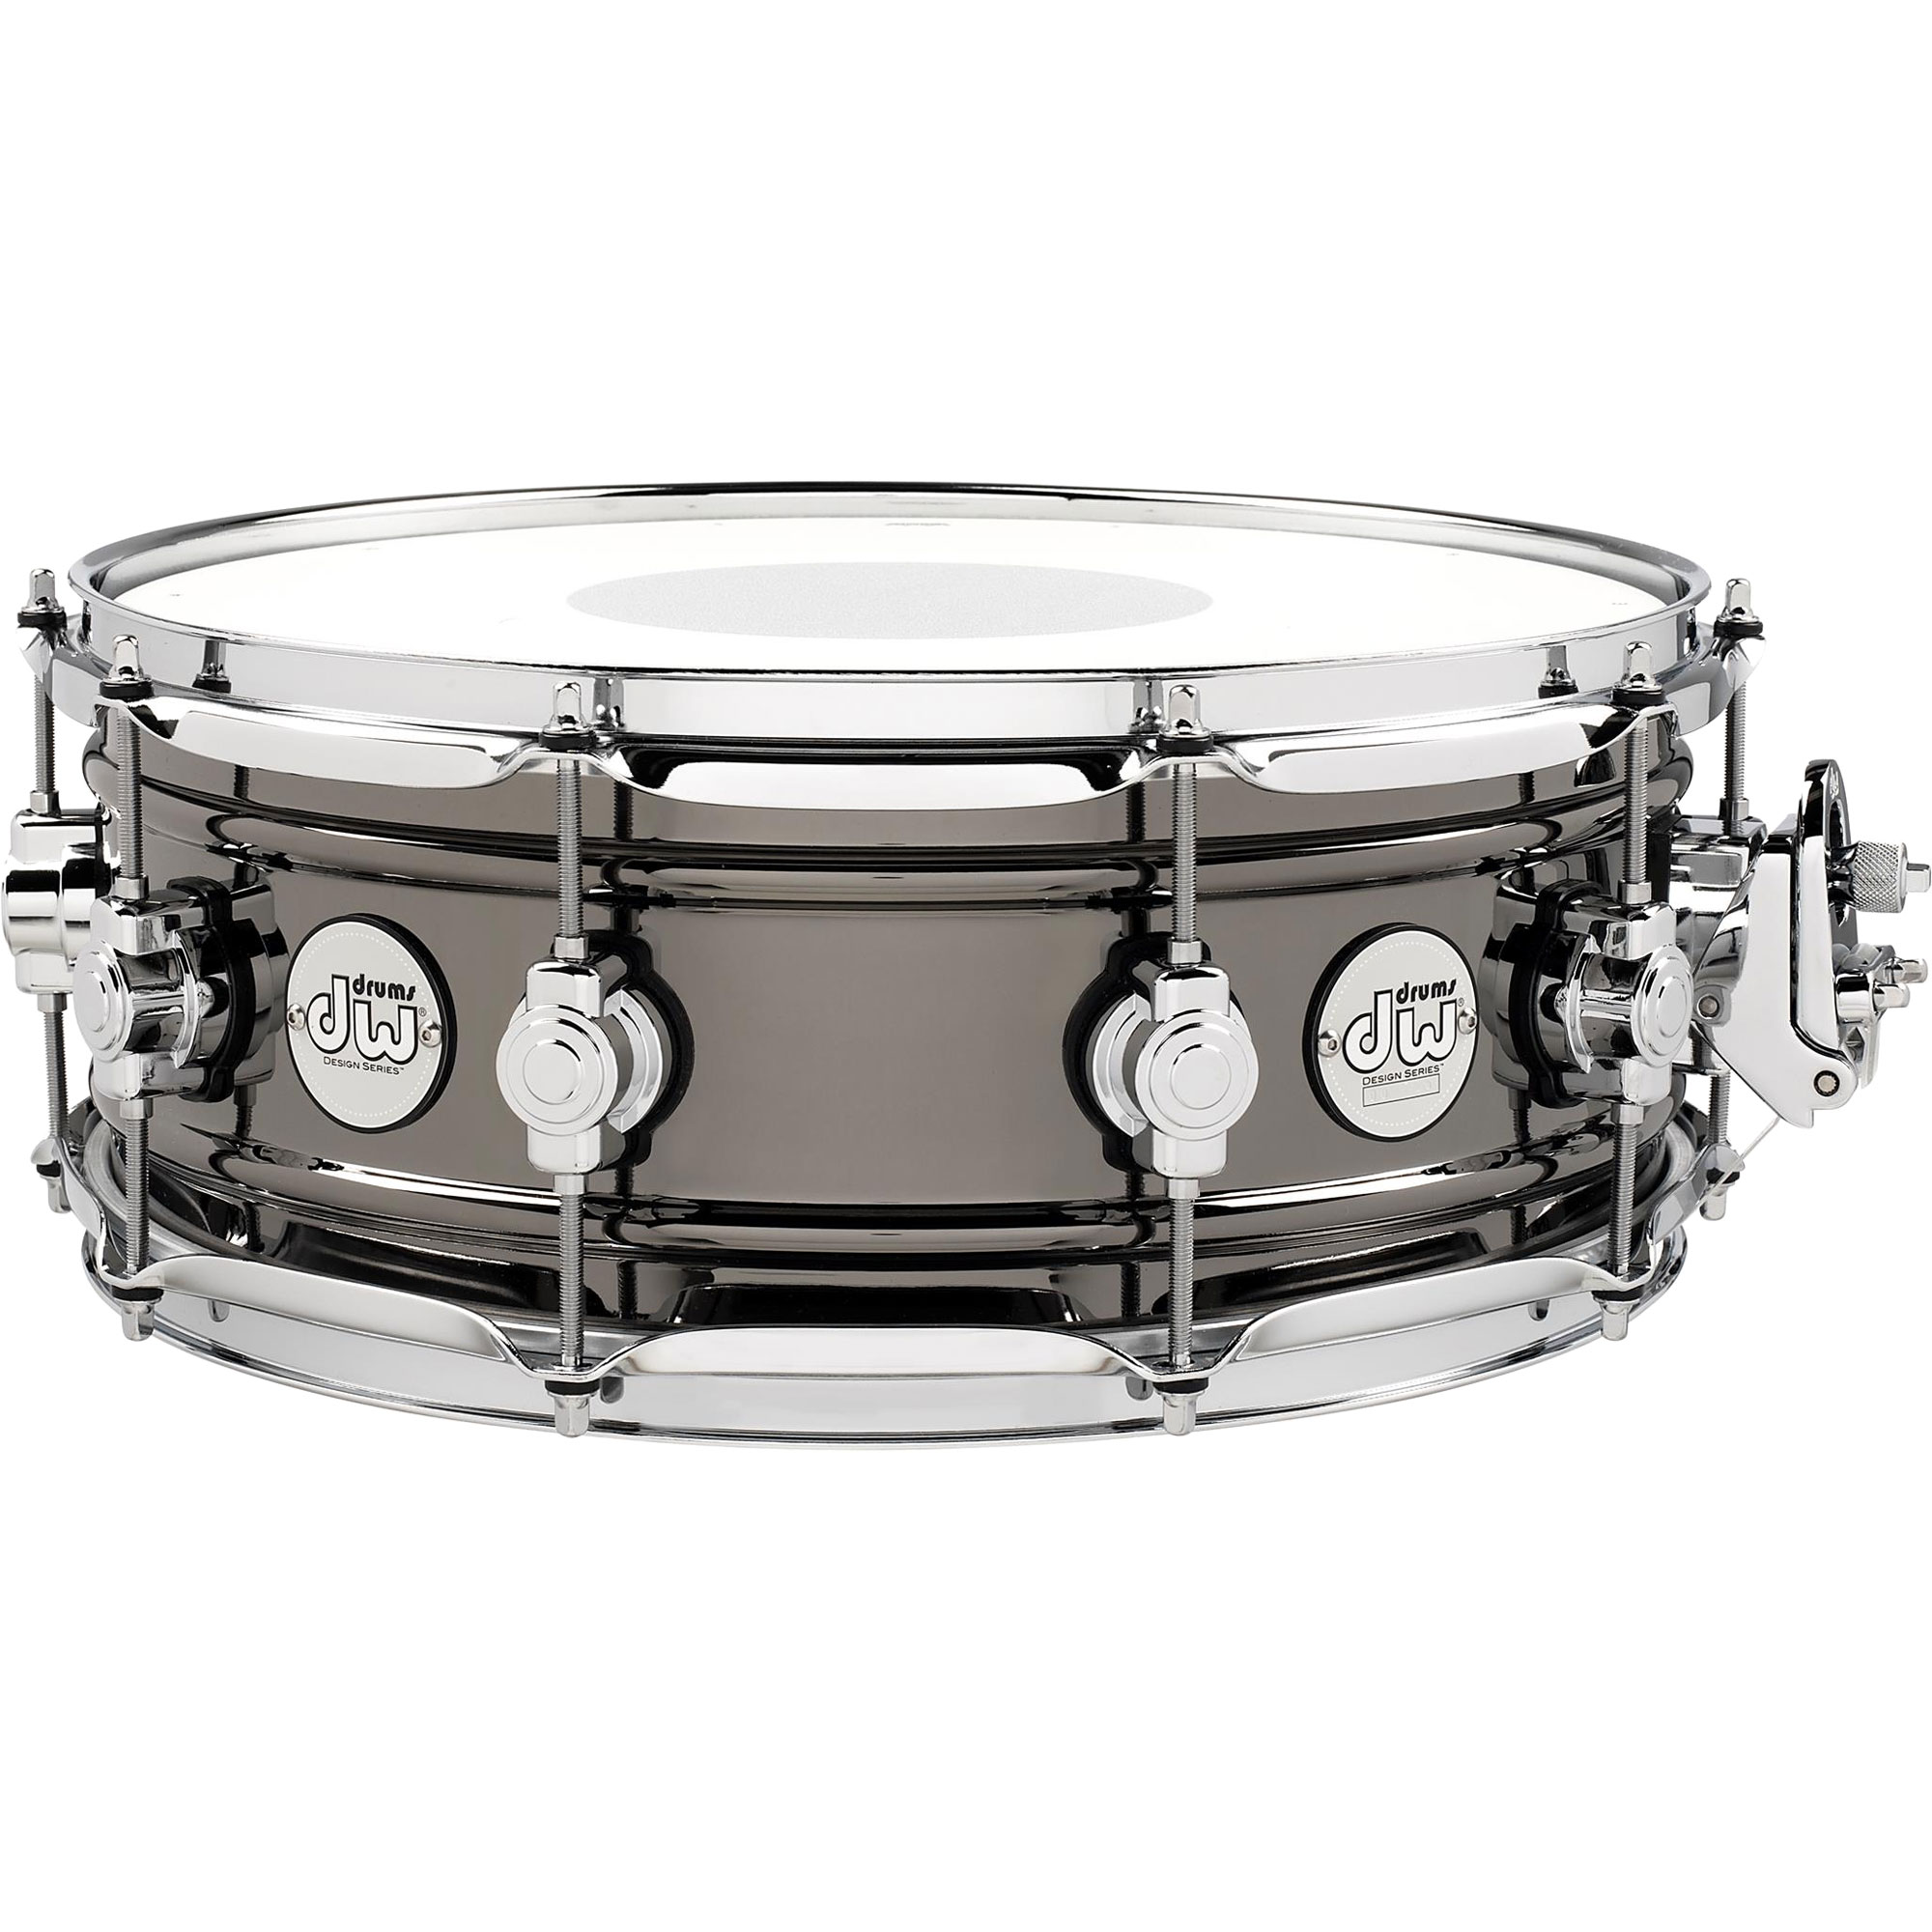 "DW 5.5"" x 14"" Design Series Black Nickel Over Brass Snare Drum"